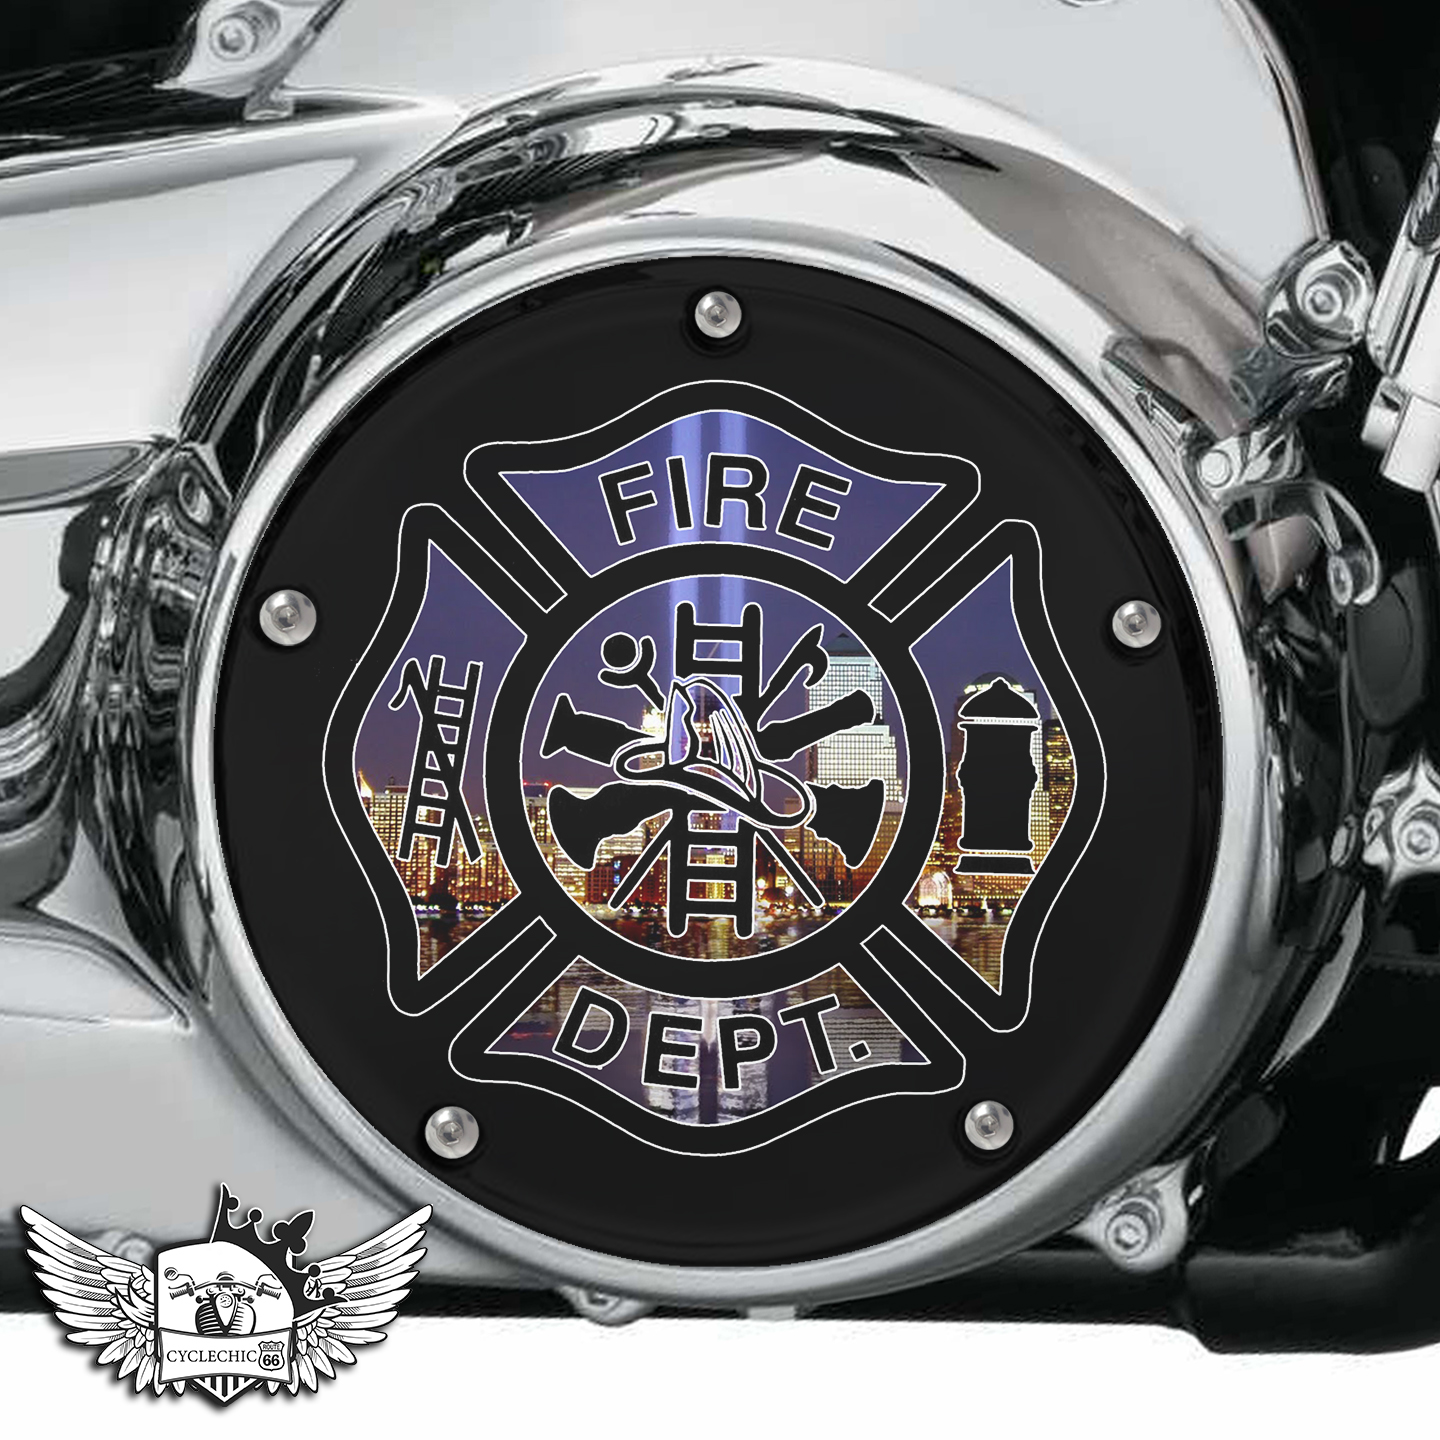 Harley Davidson Derby/Clutch Cover - Fire Rescue- 9-11 Memorial